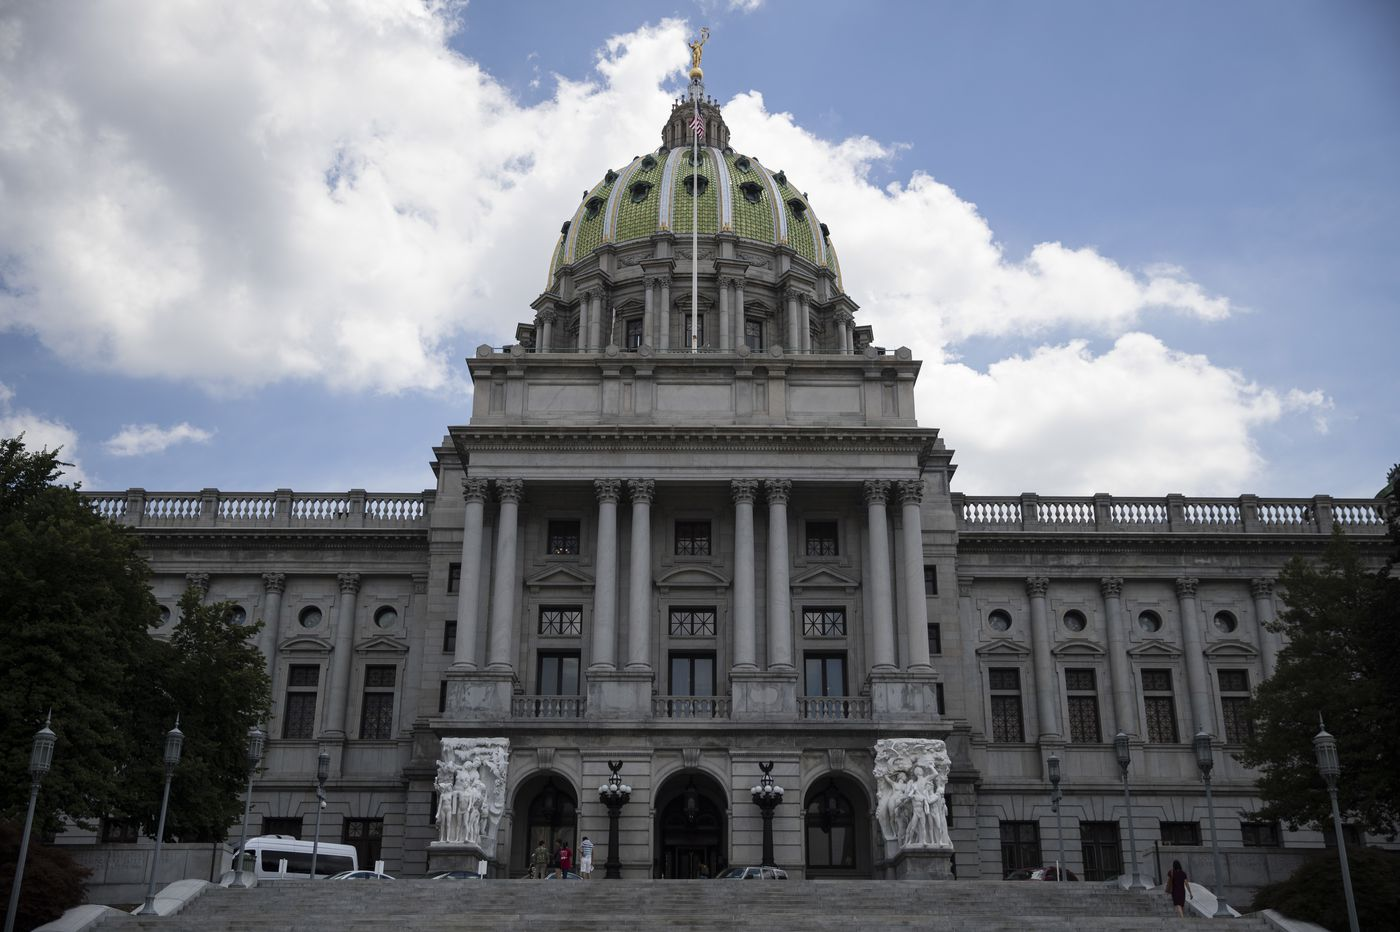 If Pa. state government won't help working families, it's up to Philly and Pittsburgh | Opinion